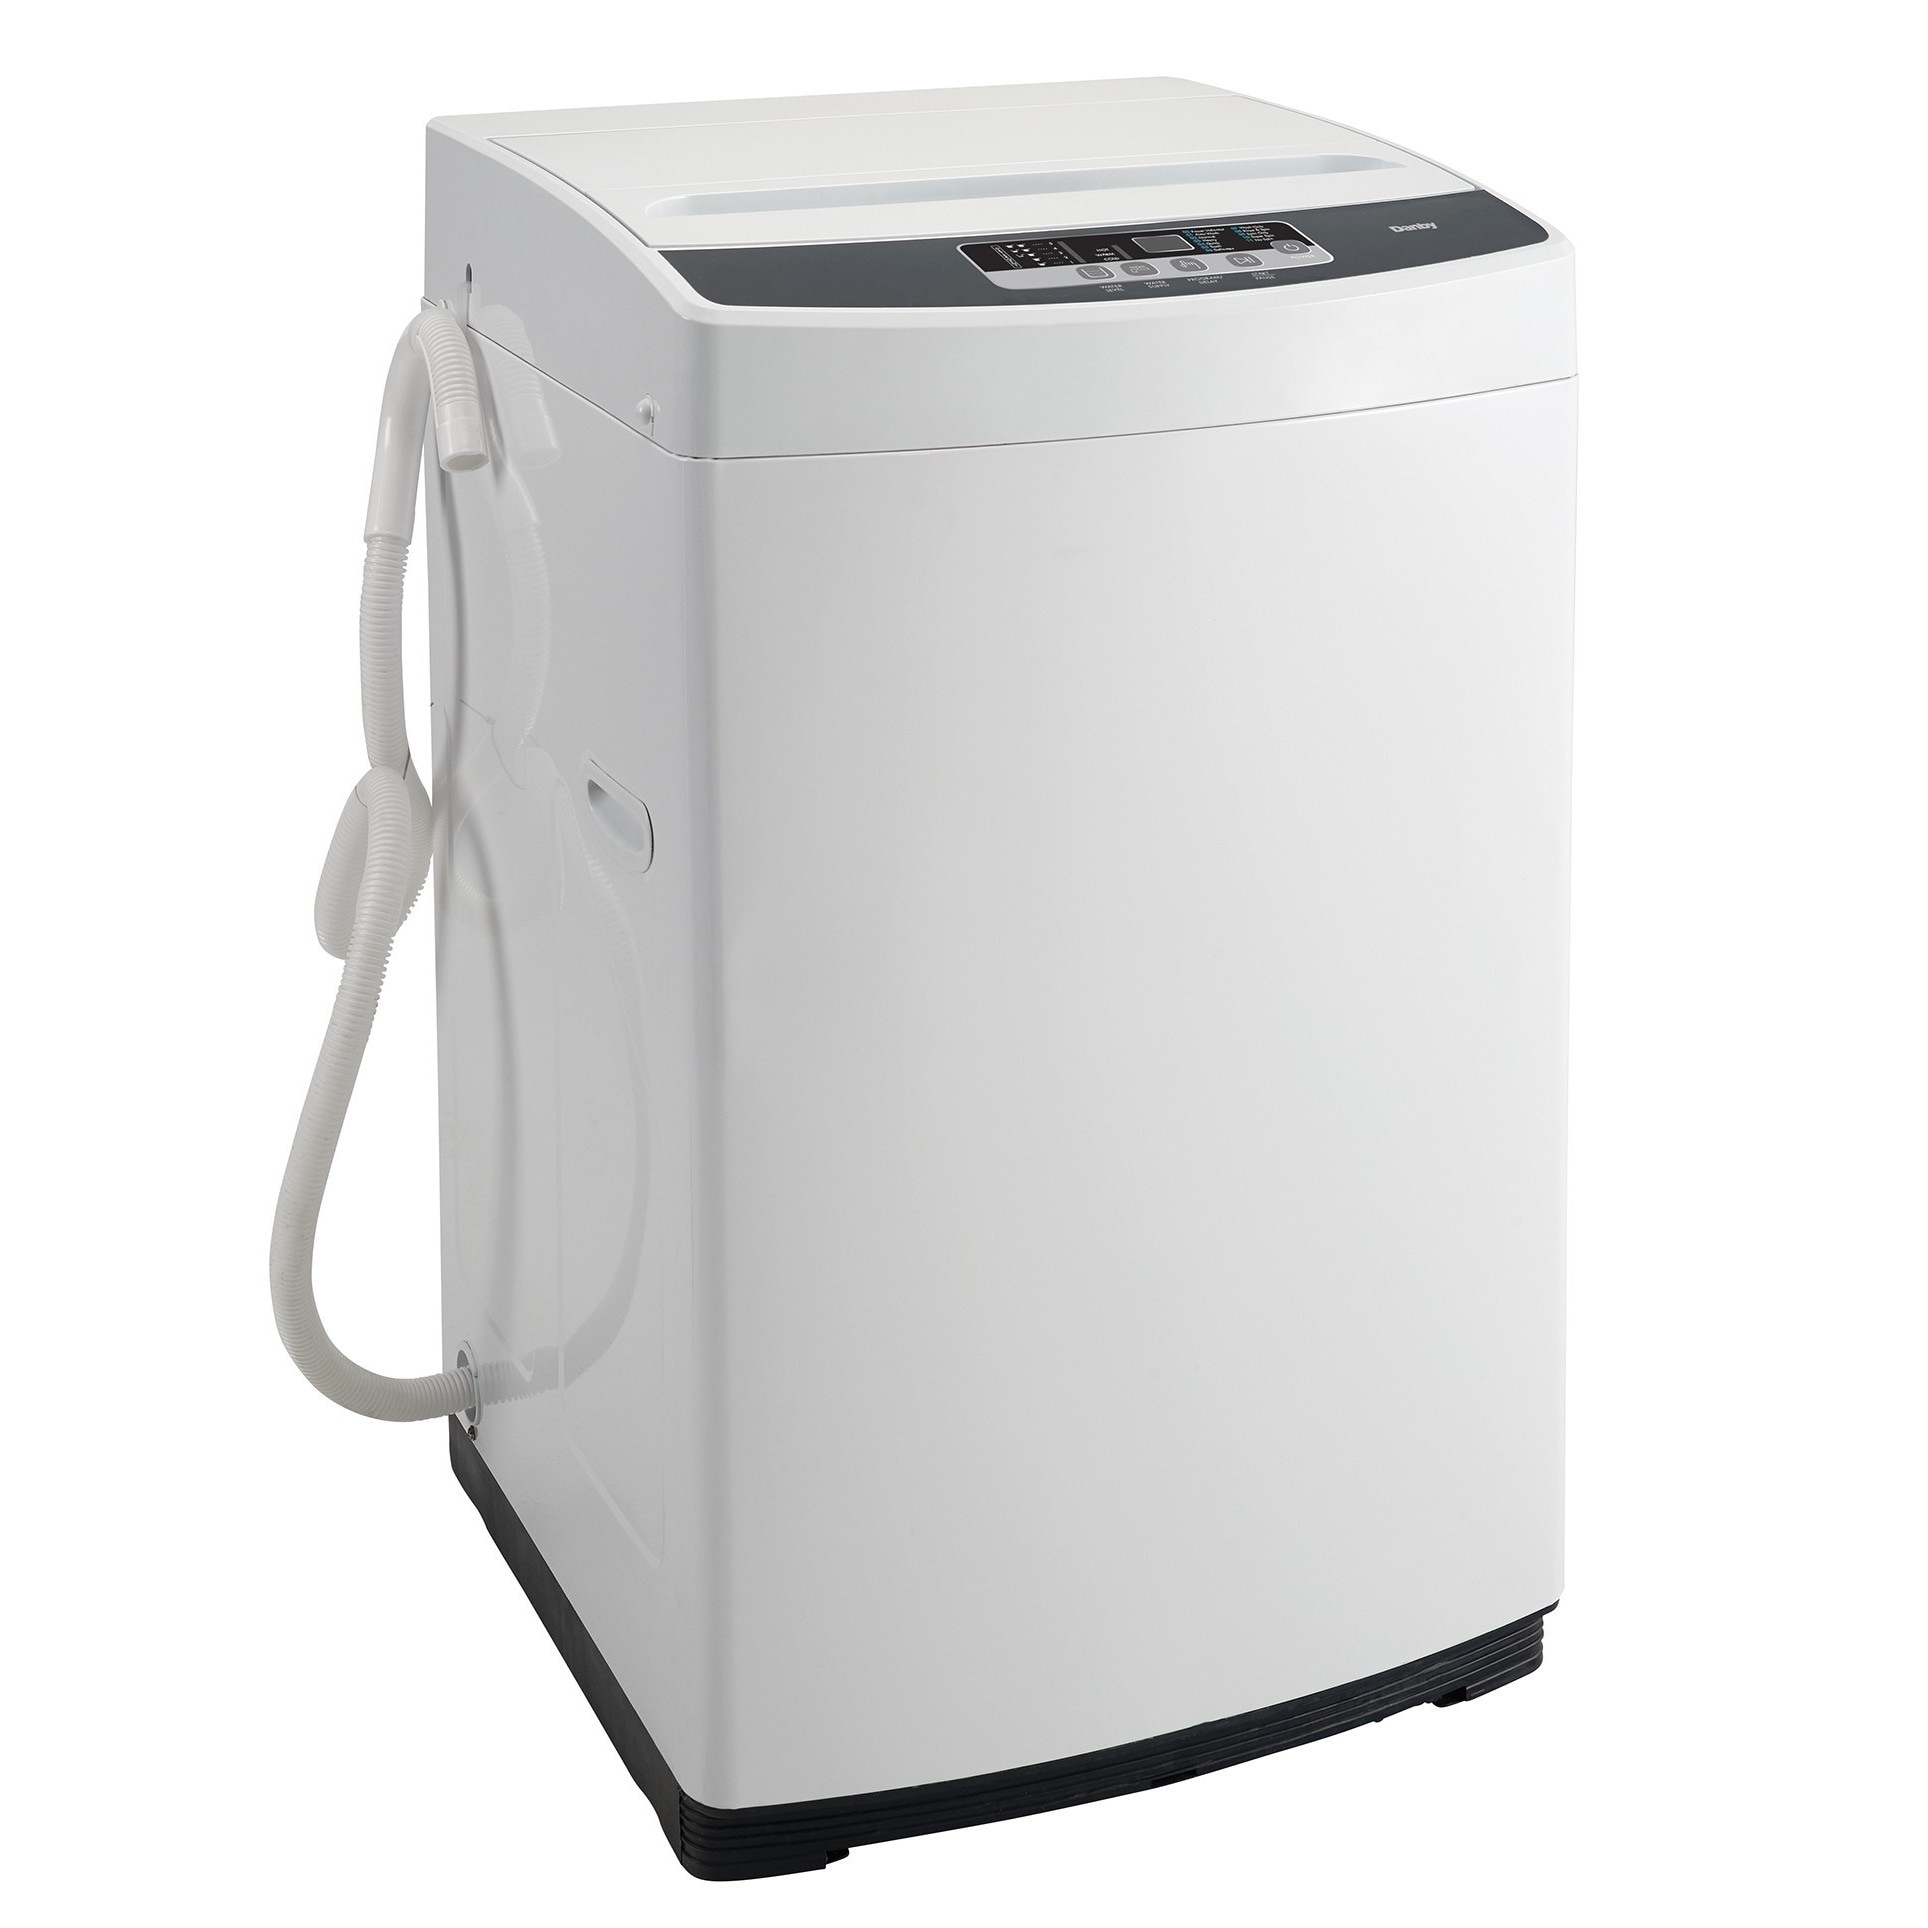 Danby 9.9-pound Washing Machine White (9.9 lb, white)